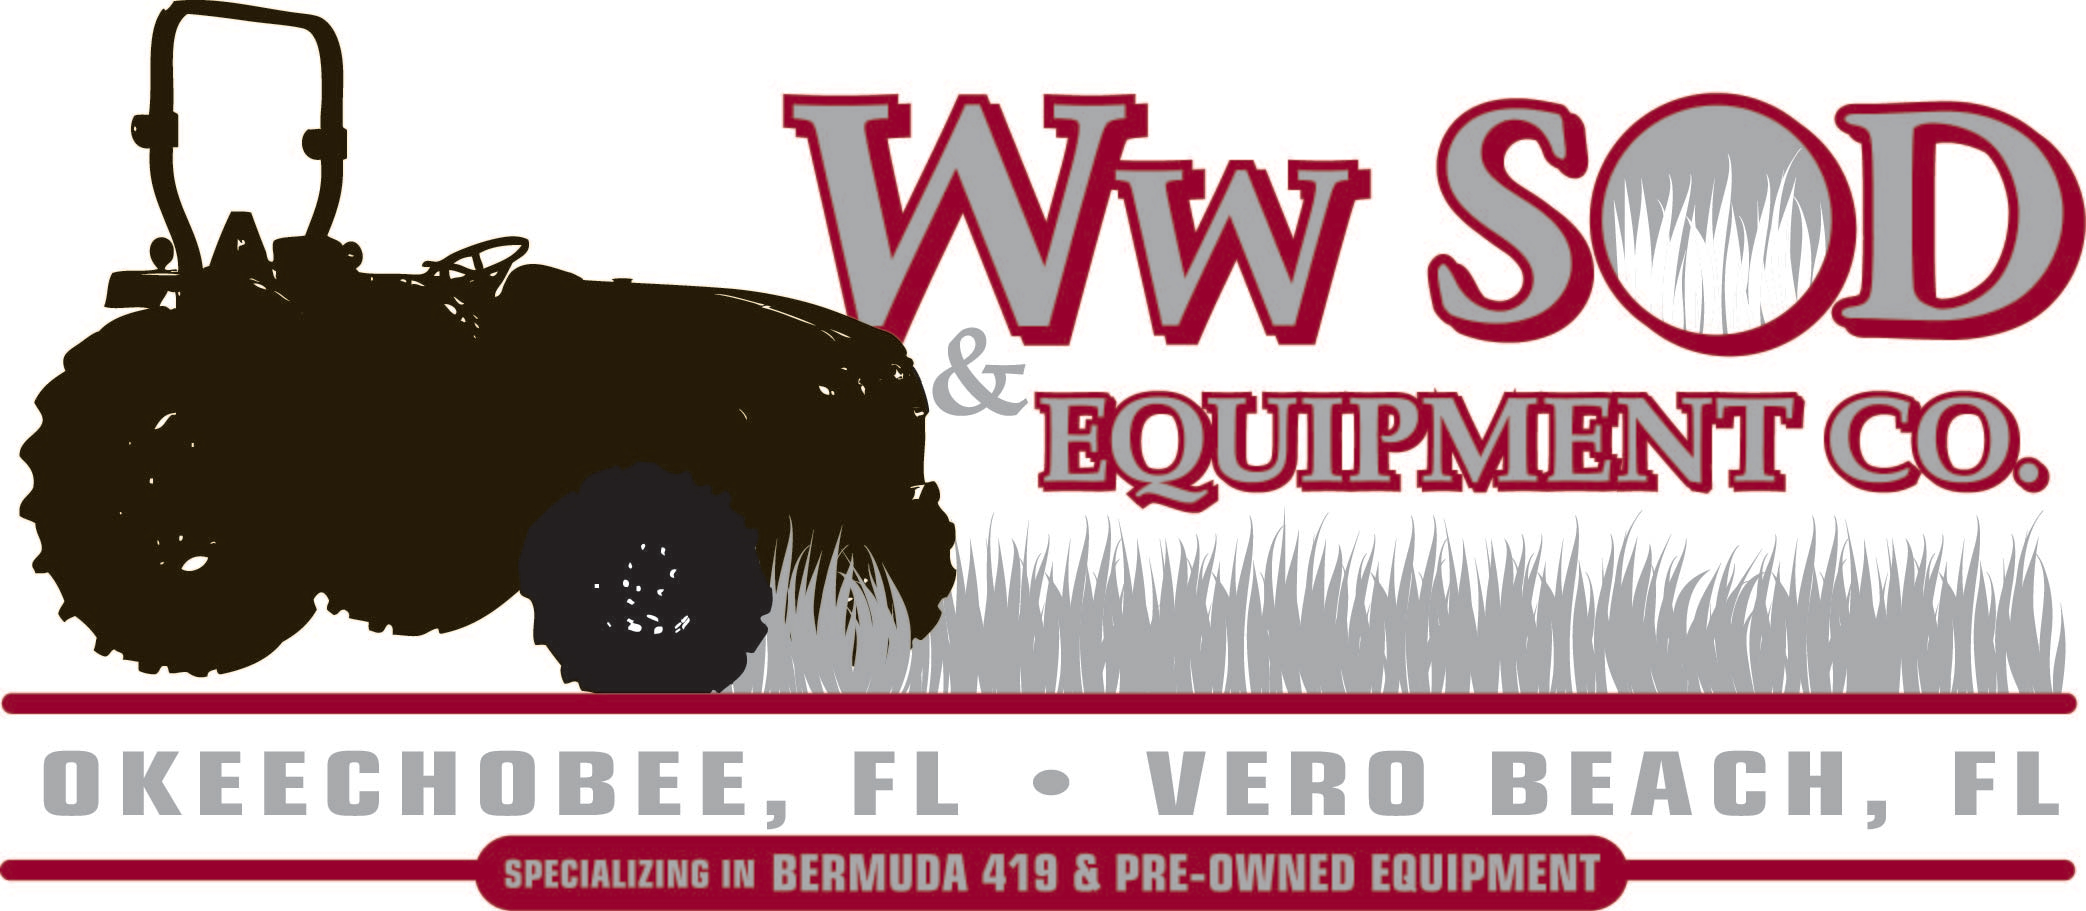 WWSOD & Equipment Company